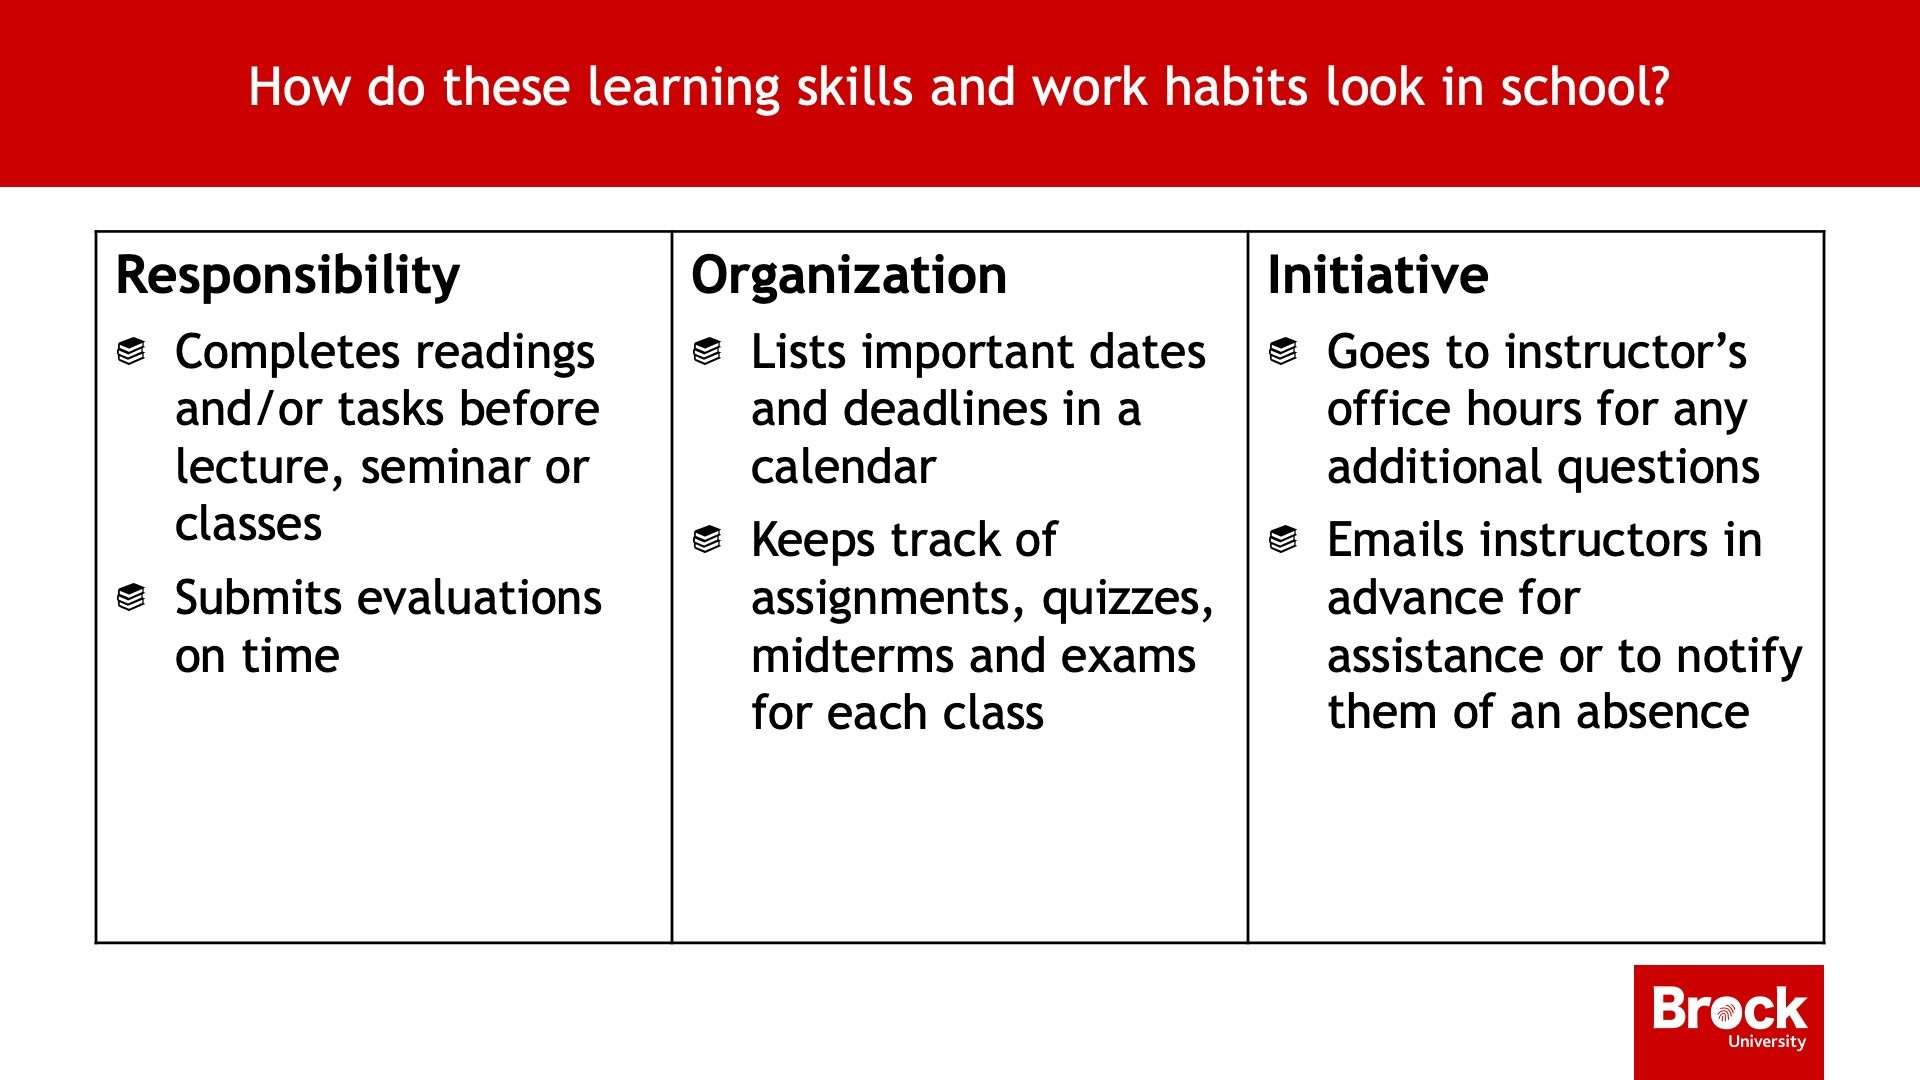 How do these learning skills and work habits look in school?